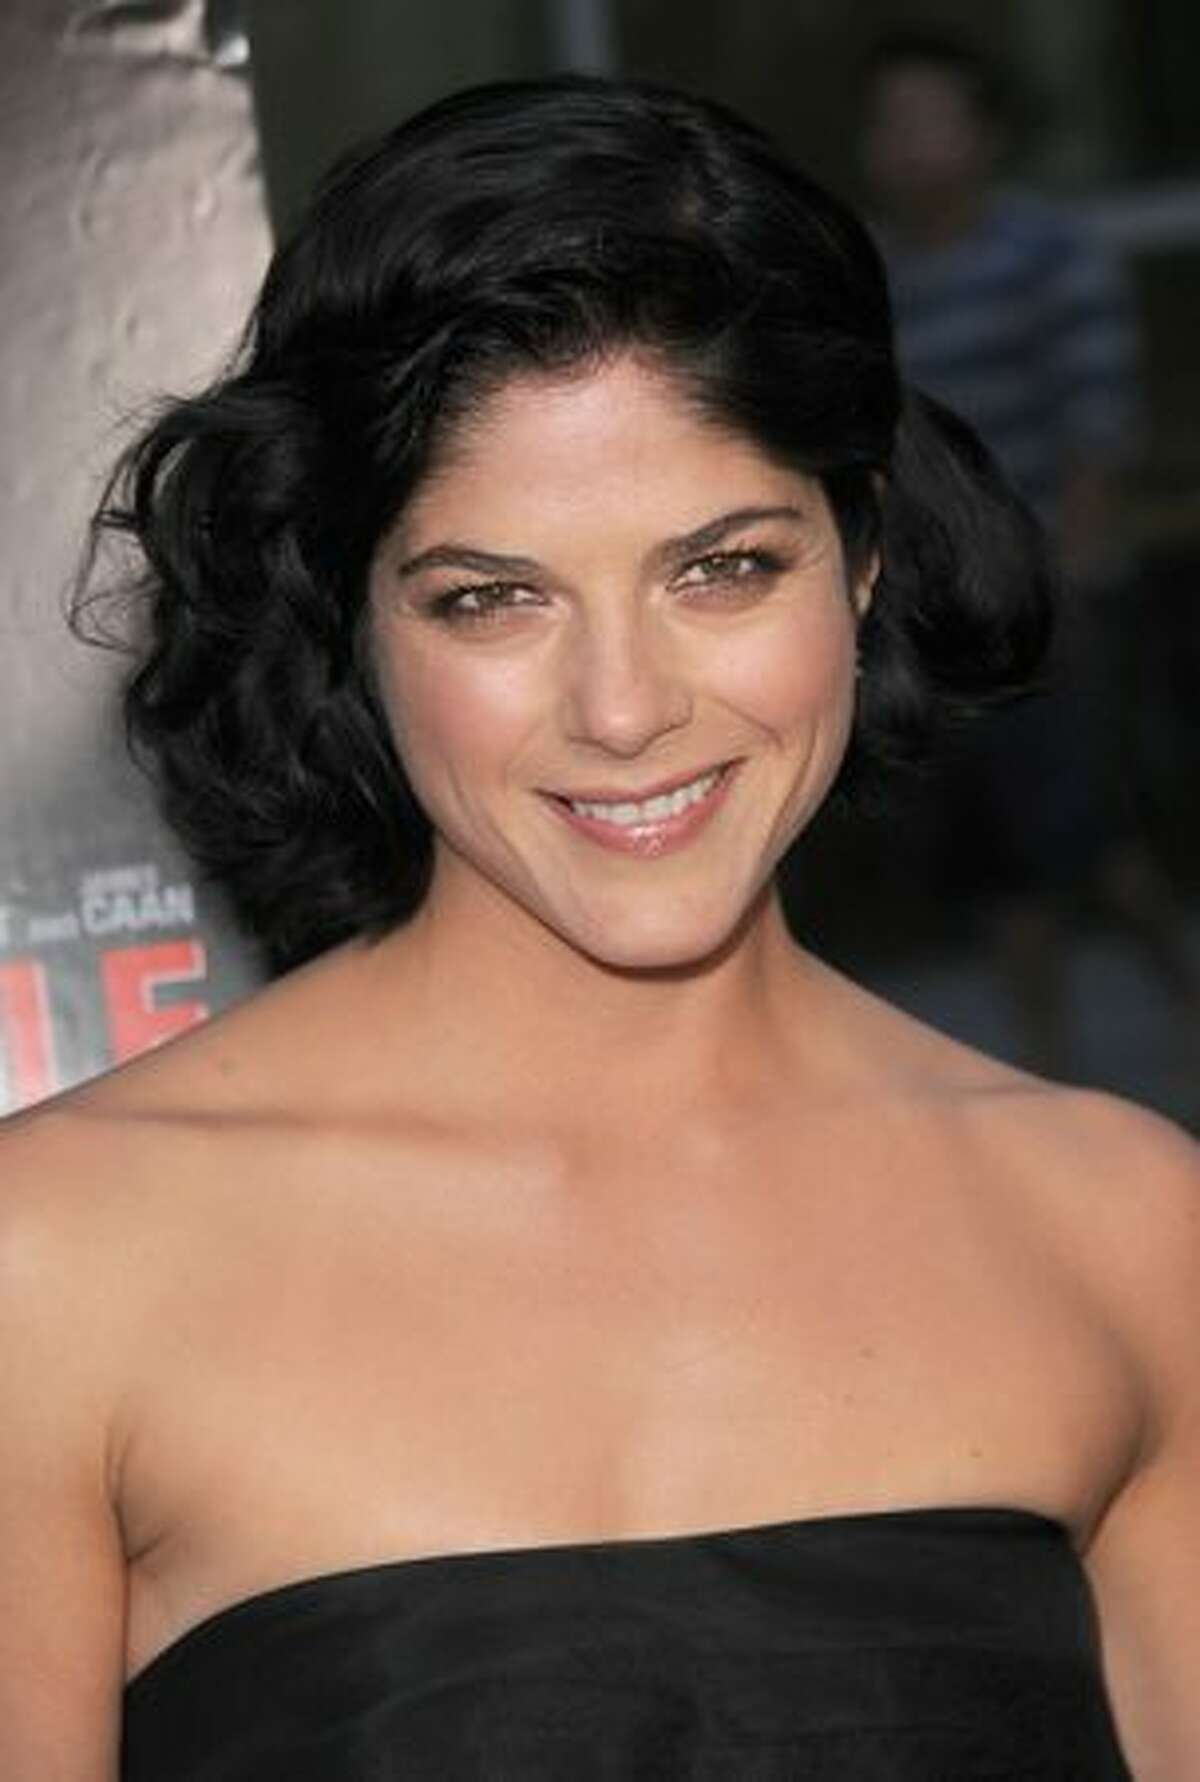 Actress Selma Blair attends the Los Angeles premiere of